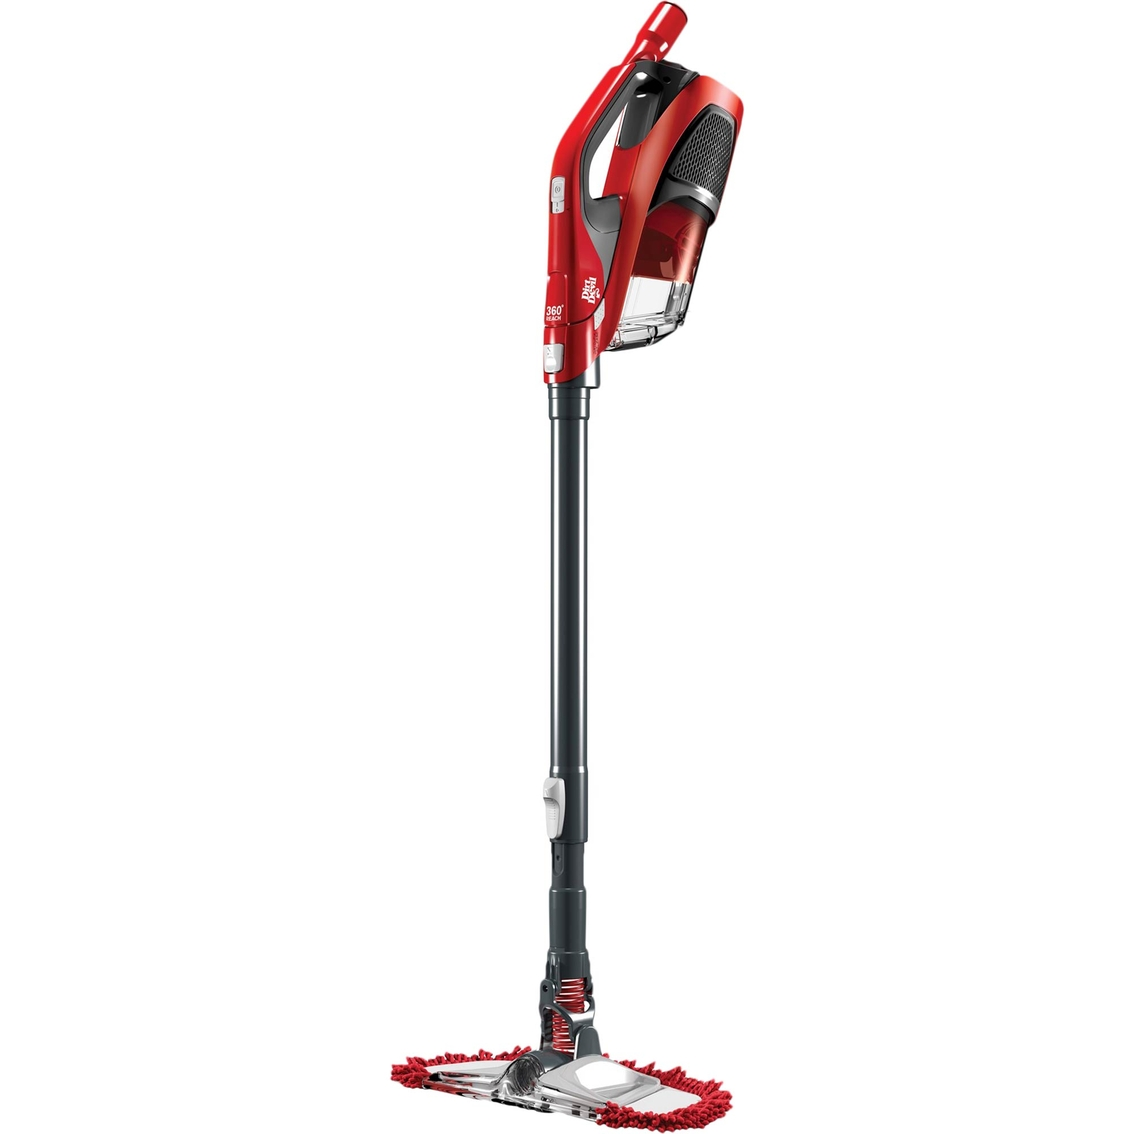 Dirt Devil 360 Reach Cyclonic Vacuum With Vac Dust Tools And Swipes Pads Vacuums Furniture Appliances Shop The Exchange